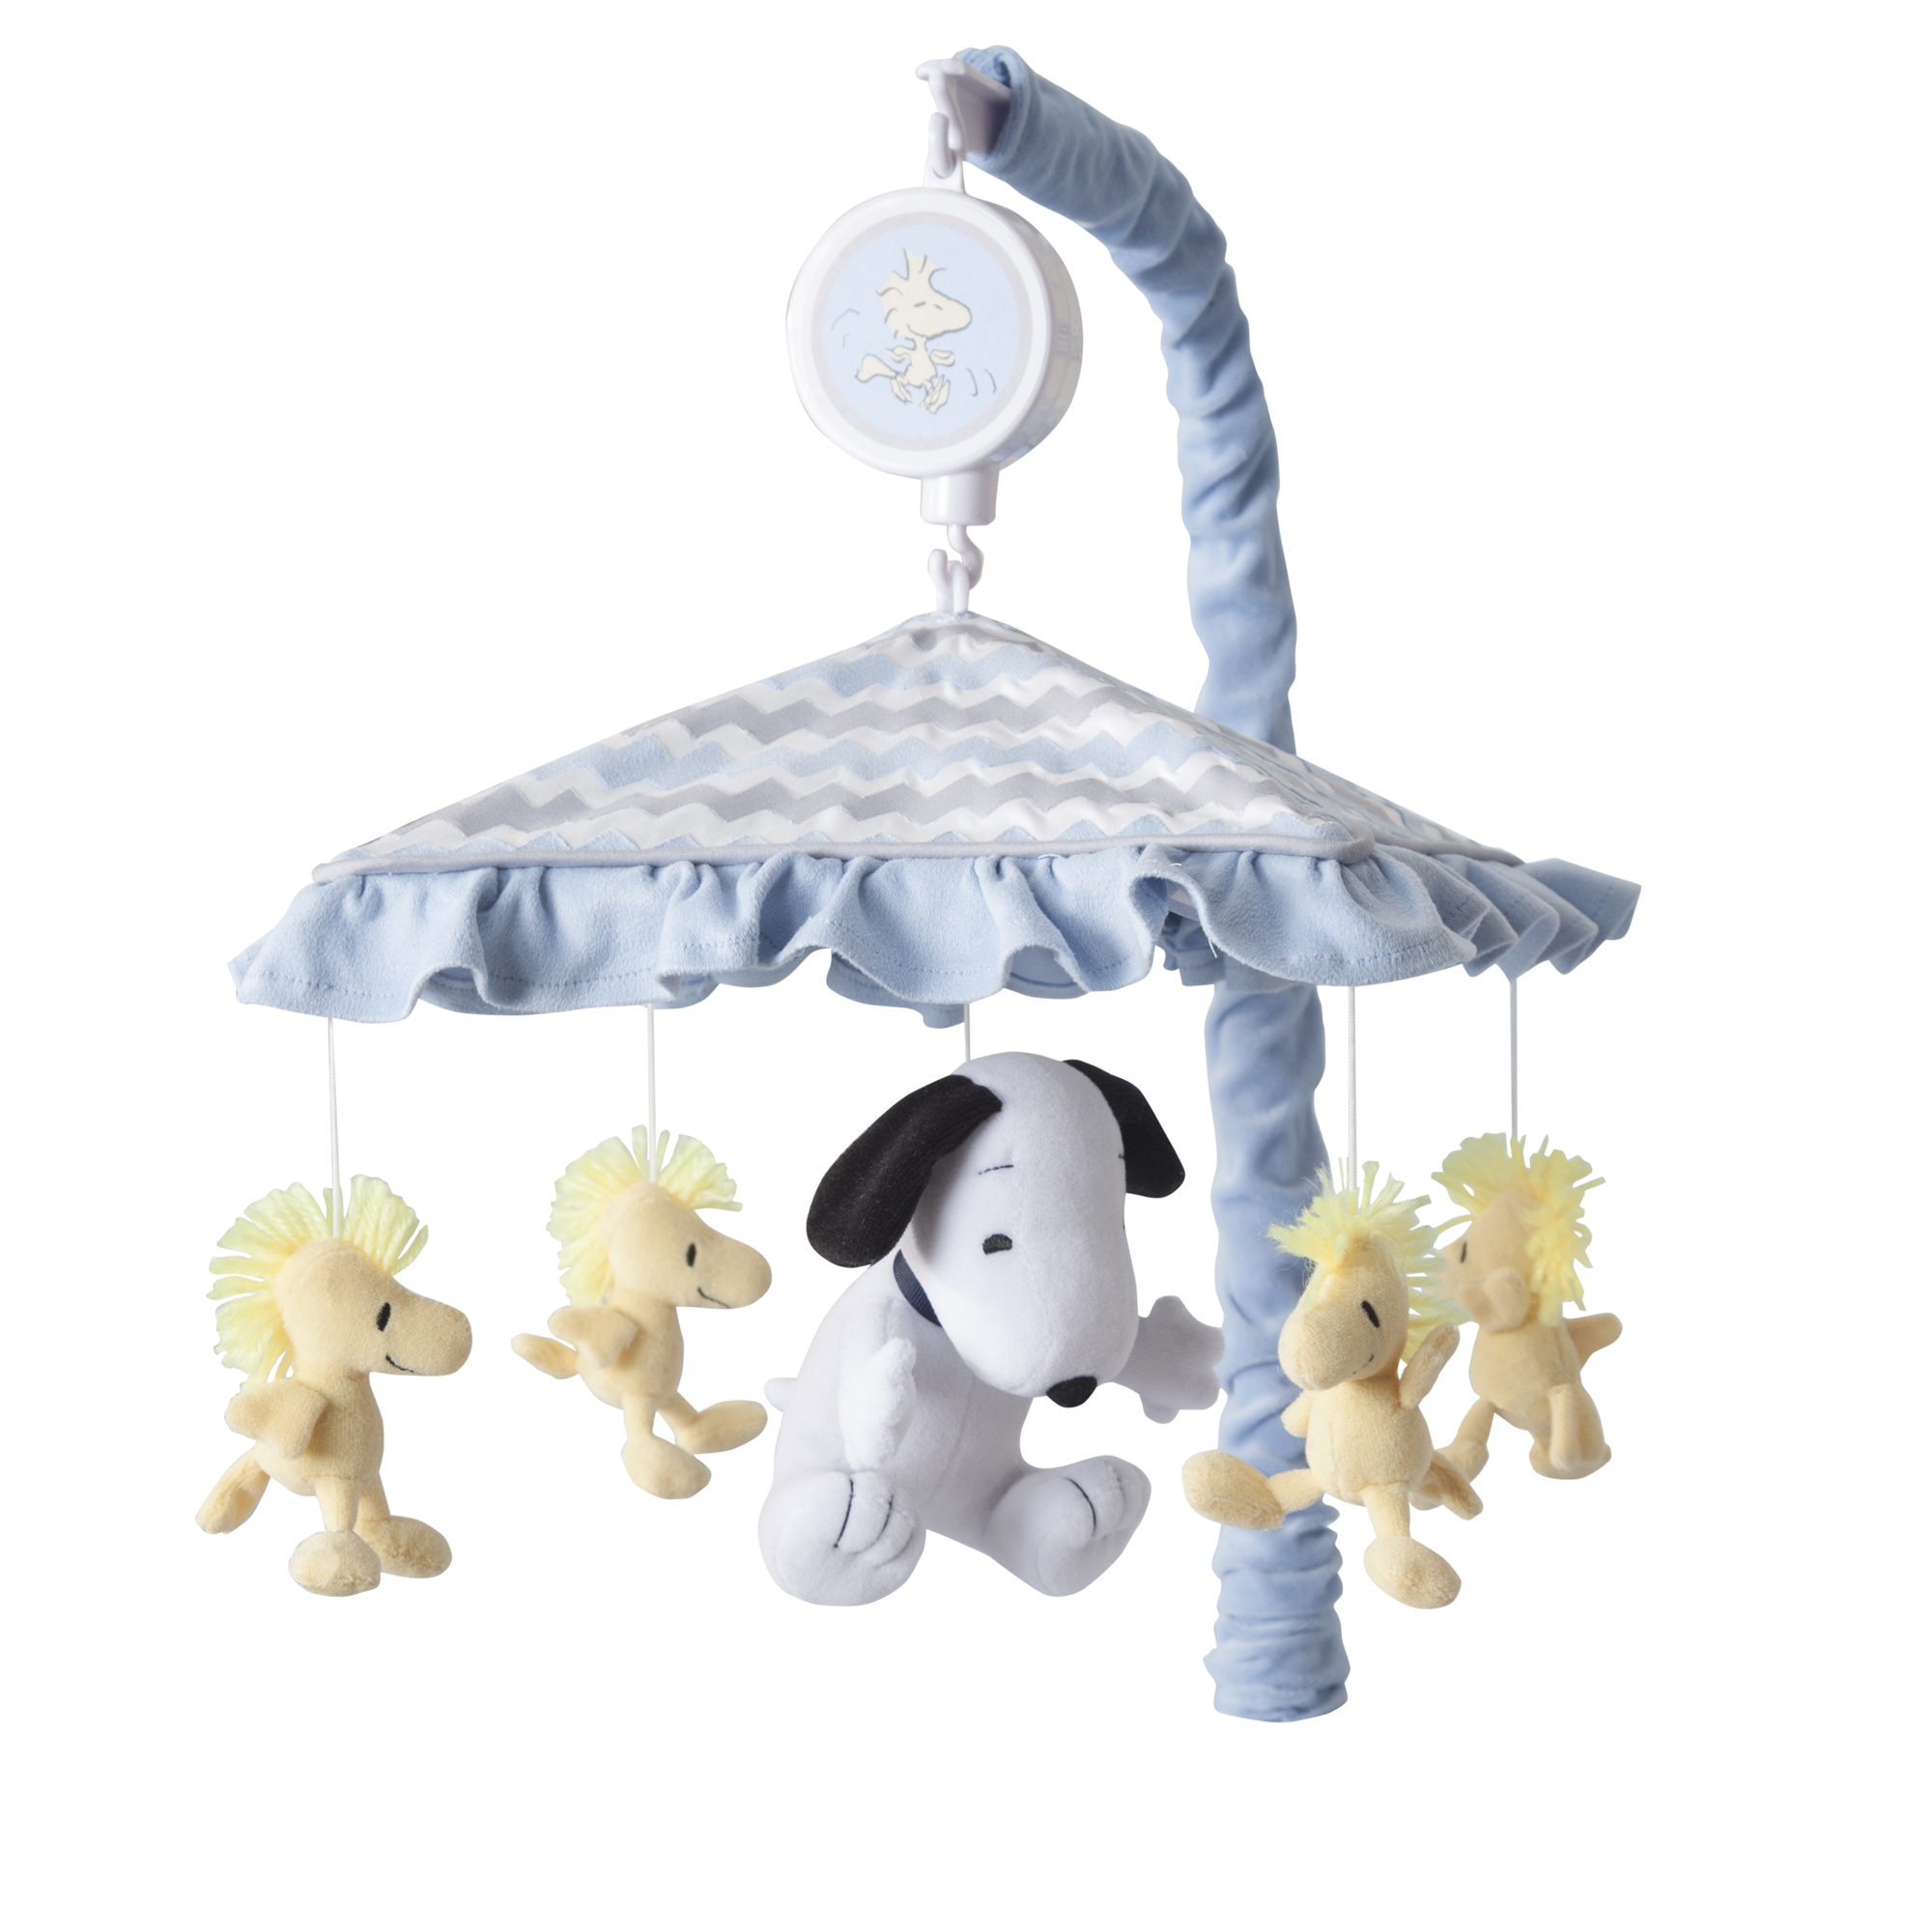 Lambs & Ivy My Little Snoopy Musical Baby Crib Mobile Blue, Gray, White by Lambs %26 Ivy